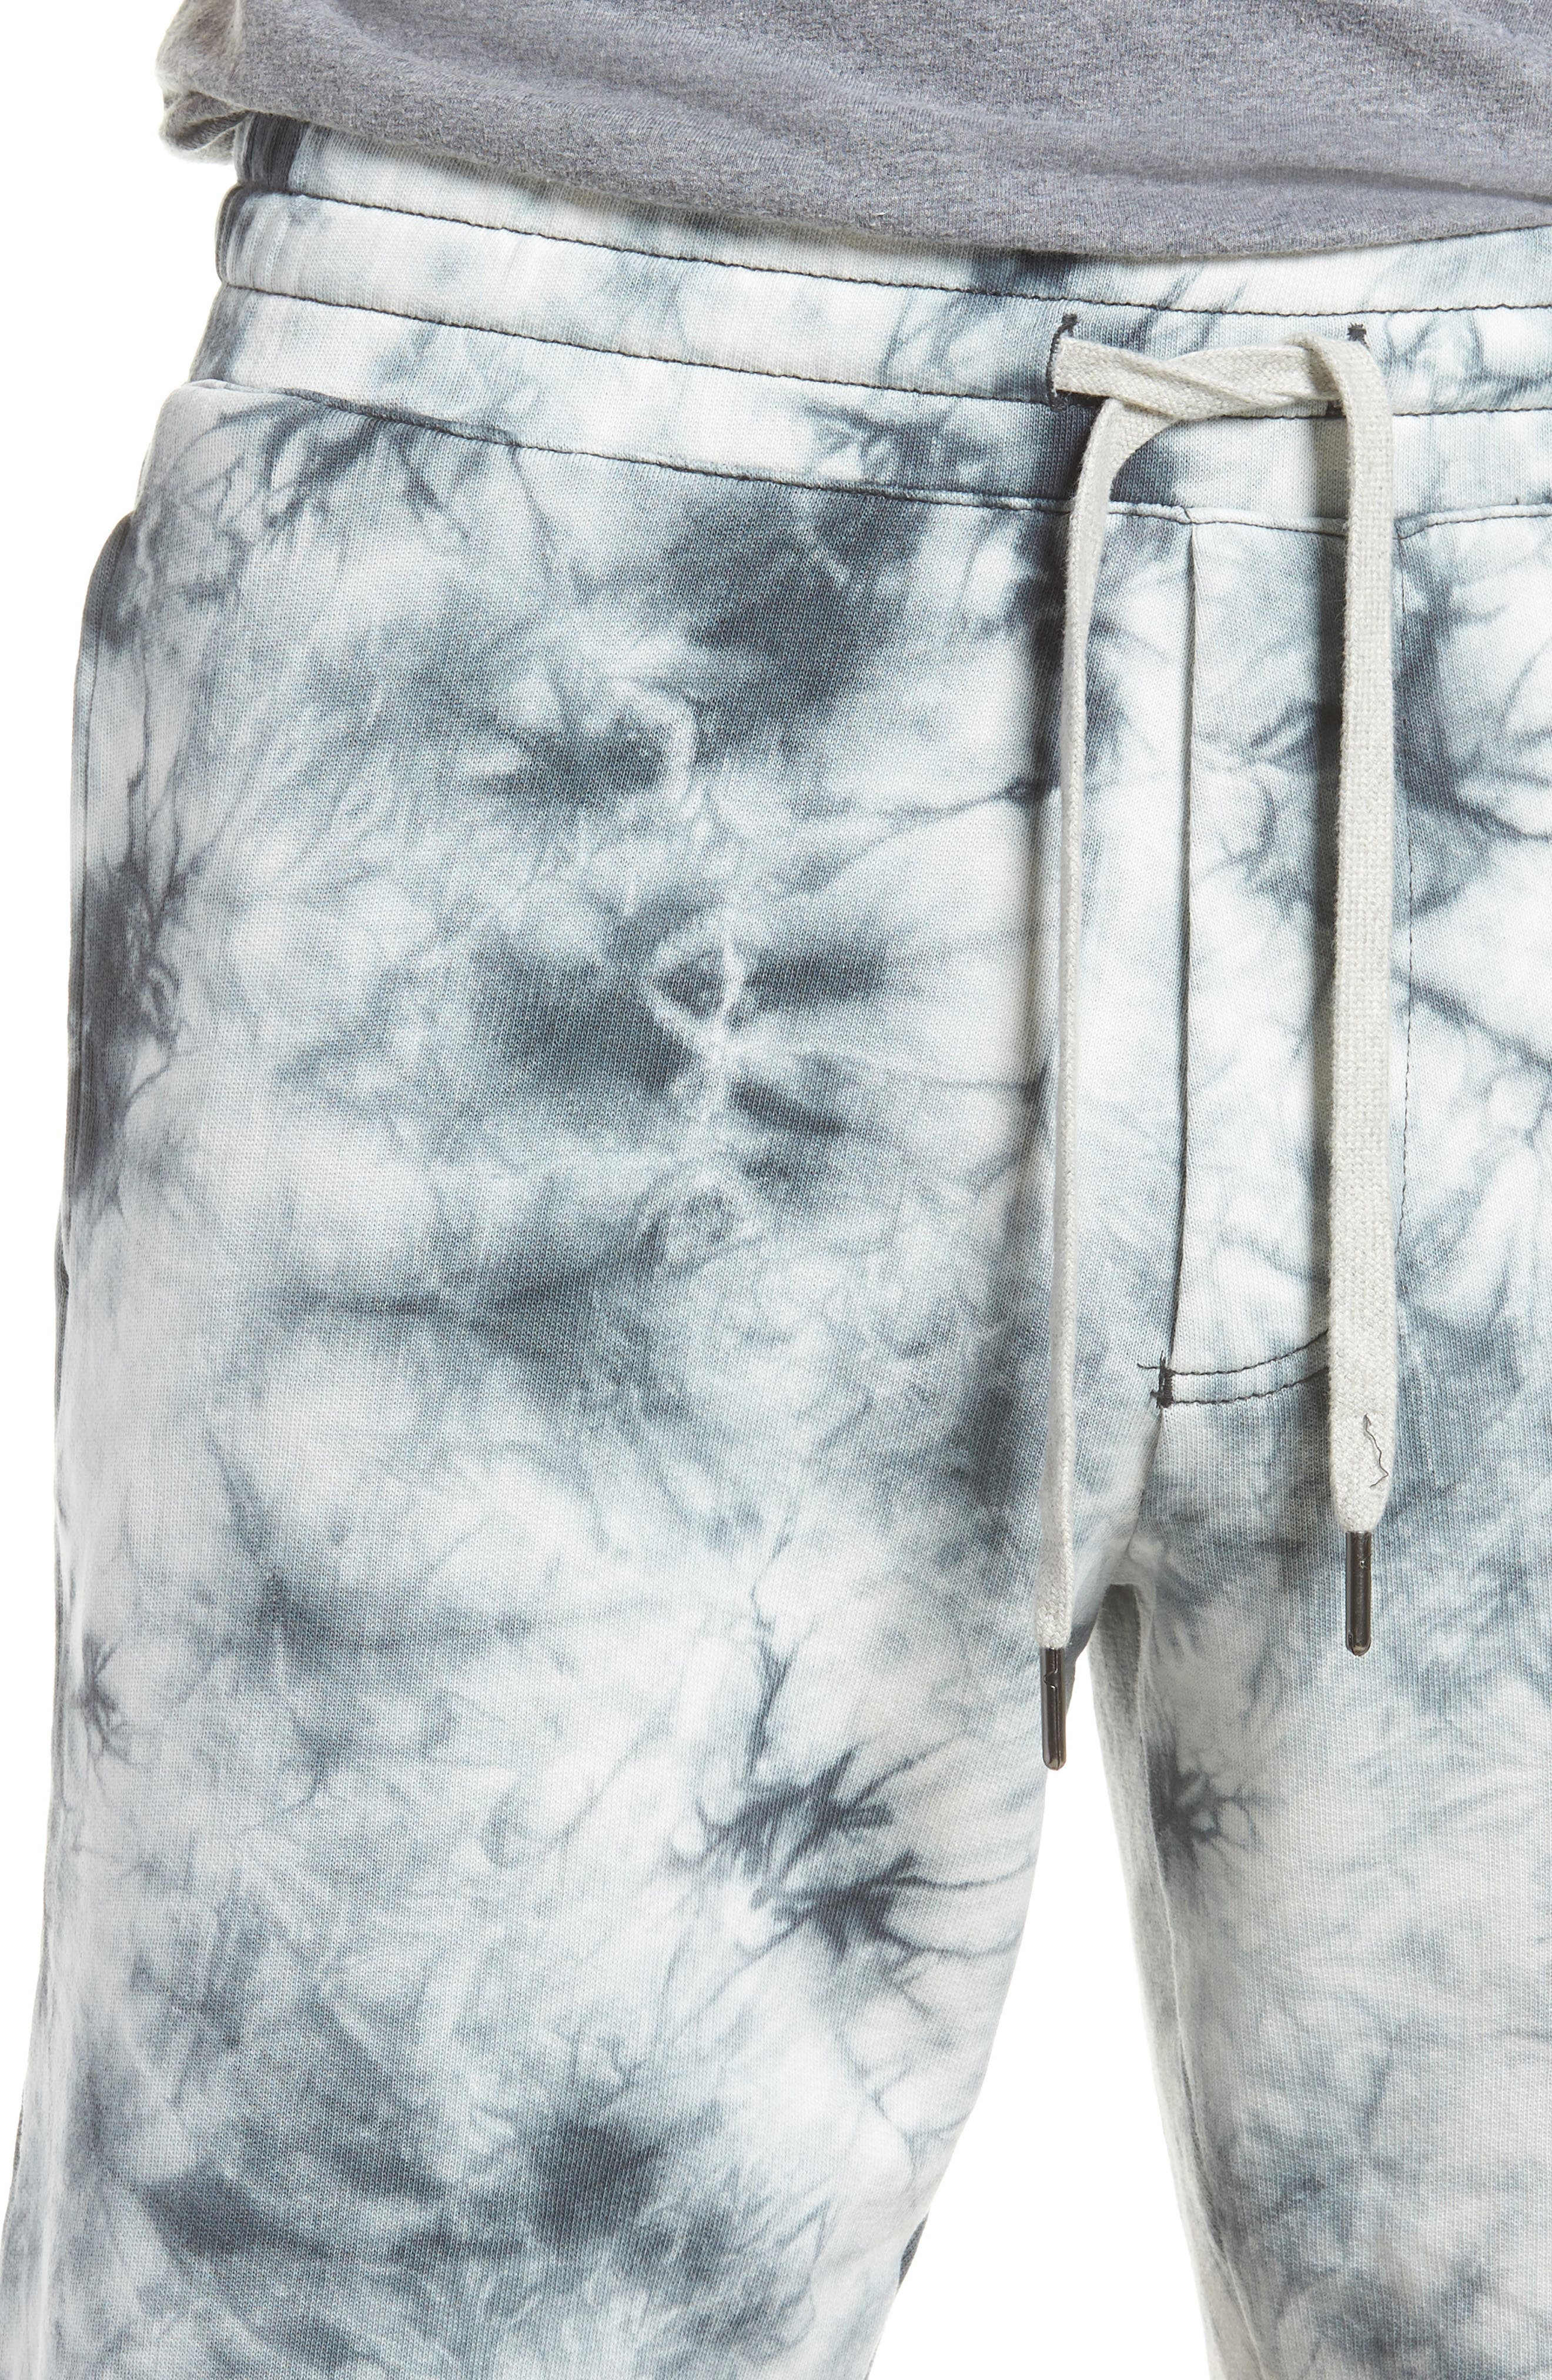 Twisted 9-Inch Cotton Shorts,                             Alternate thumbnail 4, color,                             Blue Tie Dye